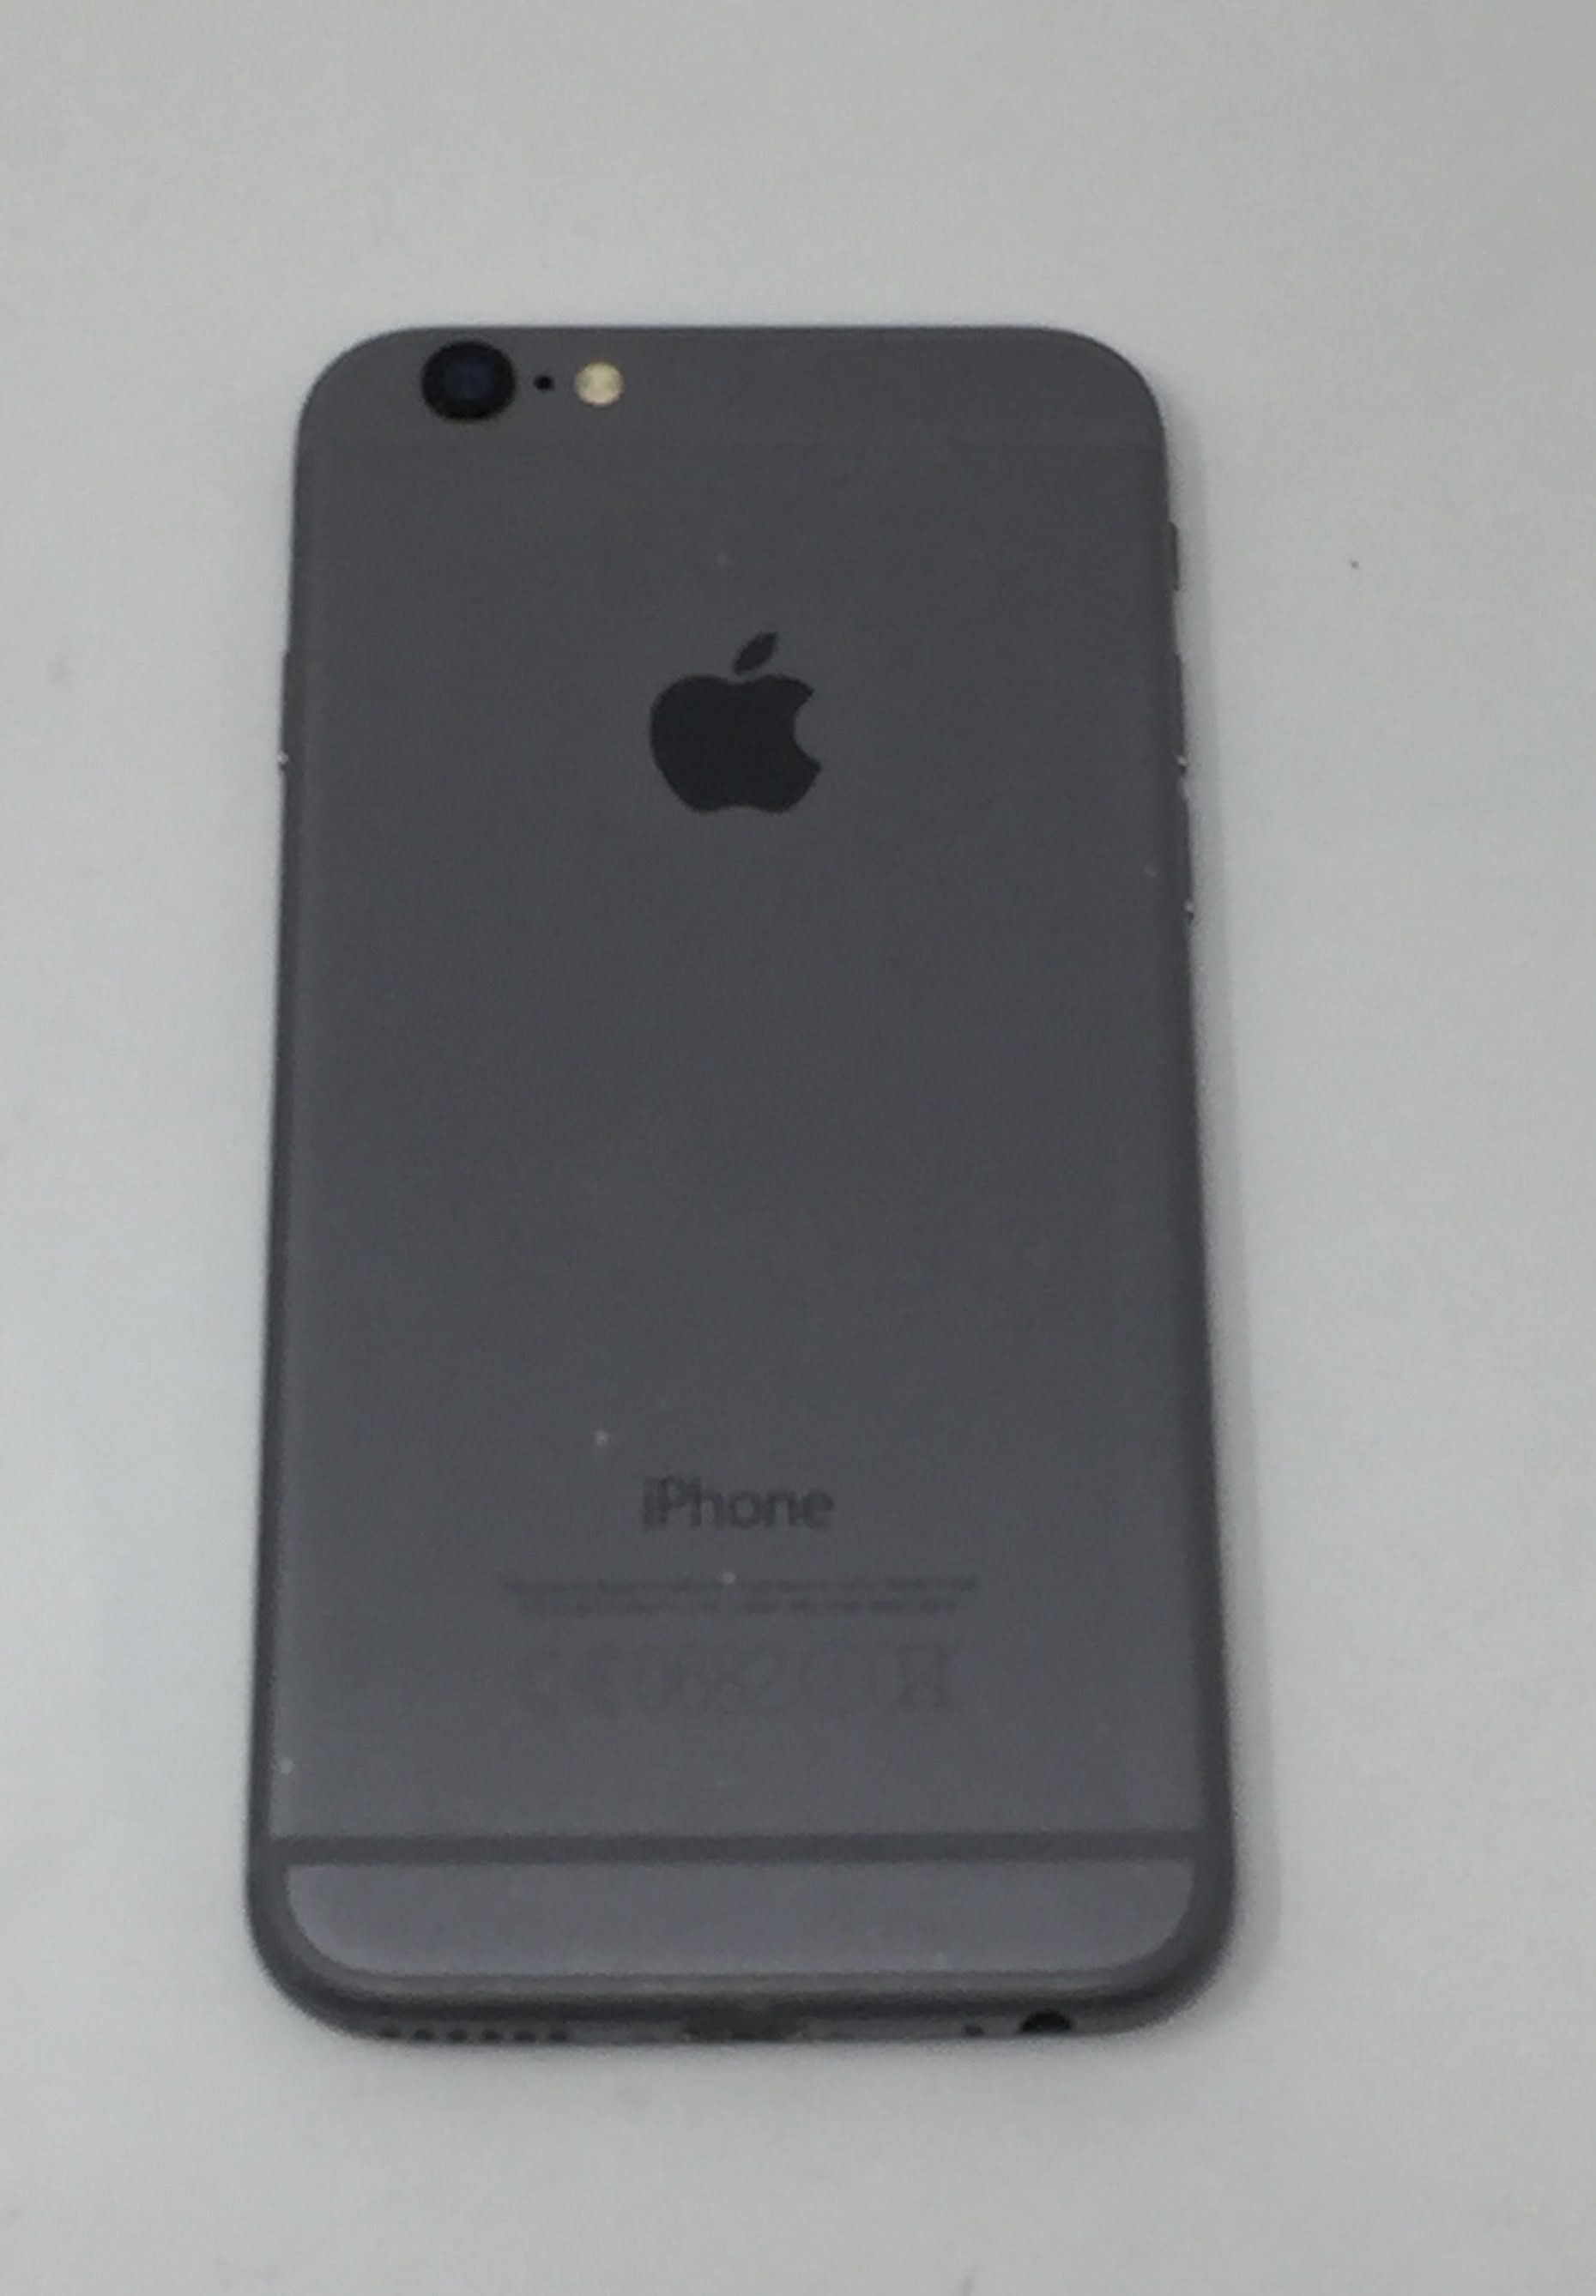 iPhone 6 32GB, 32 GB, GRAY, Afbeelding 2